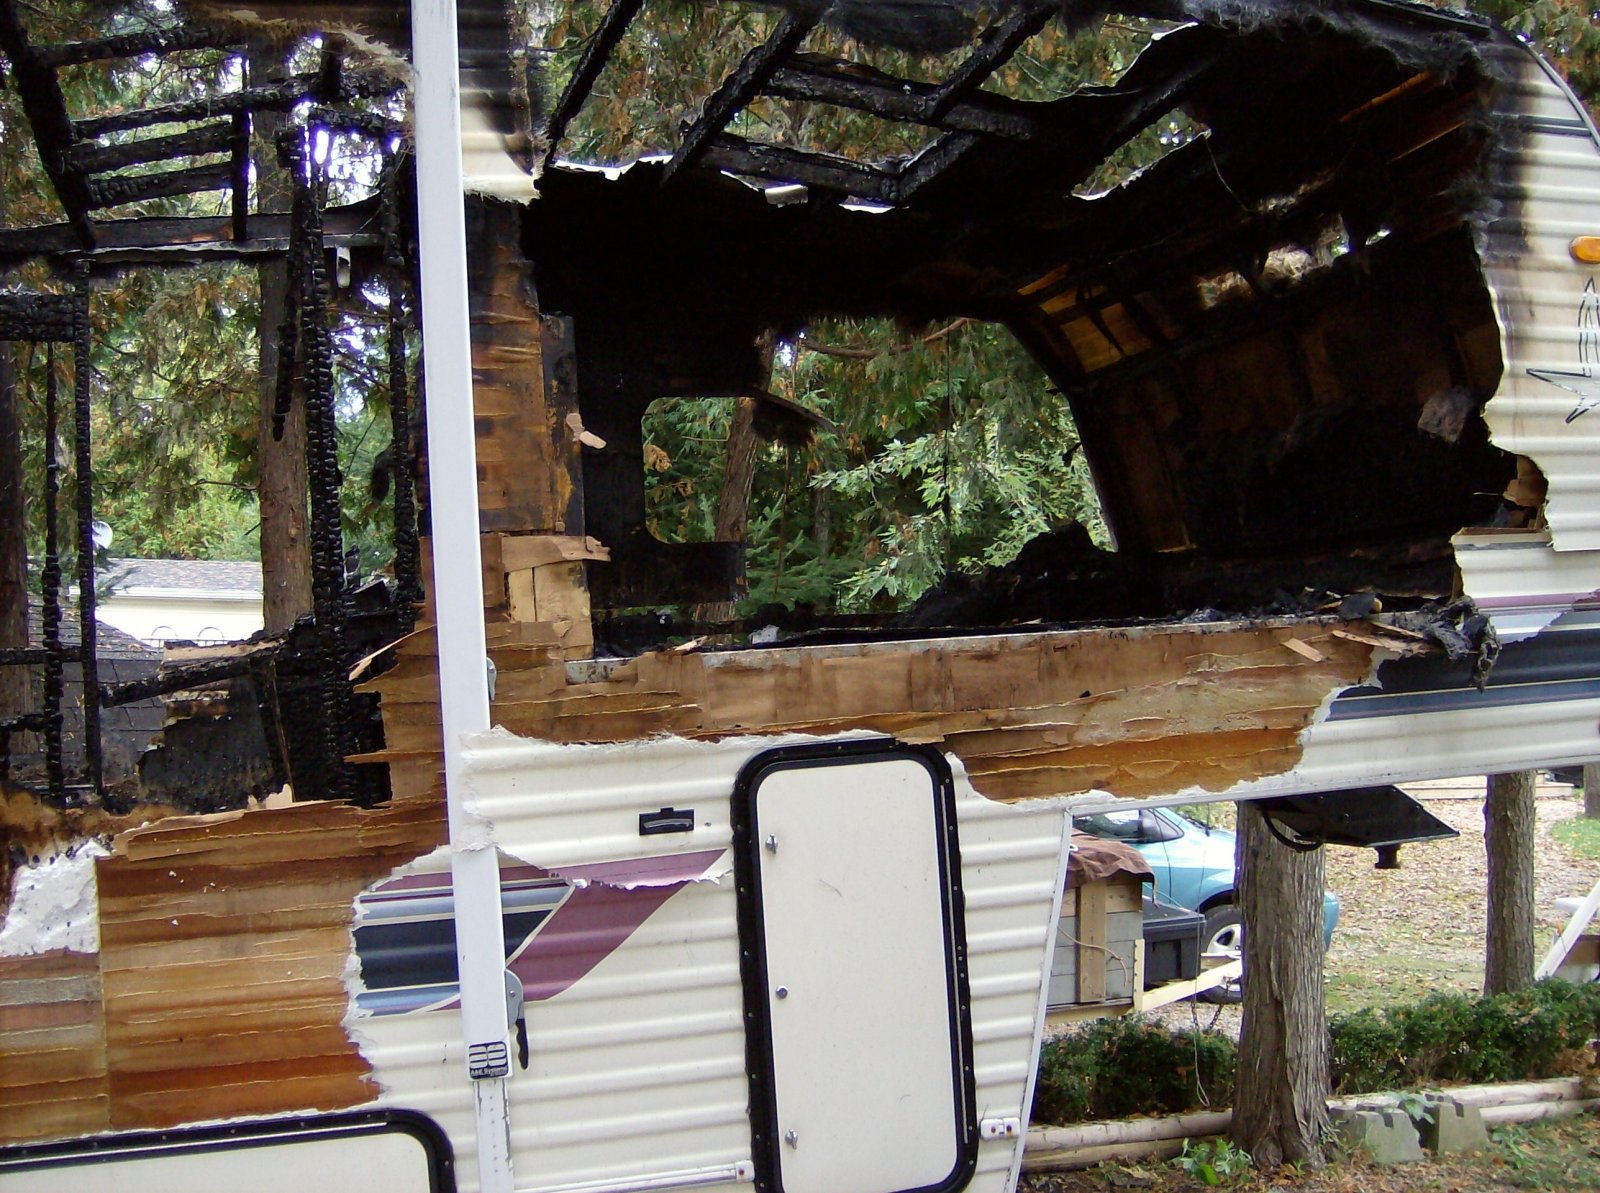 Click image for larger version  Name:Fire Damaged Trailer 003.jpg Views:114 Size:420.7 KB ID:112187